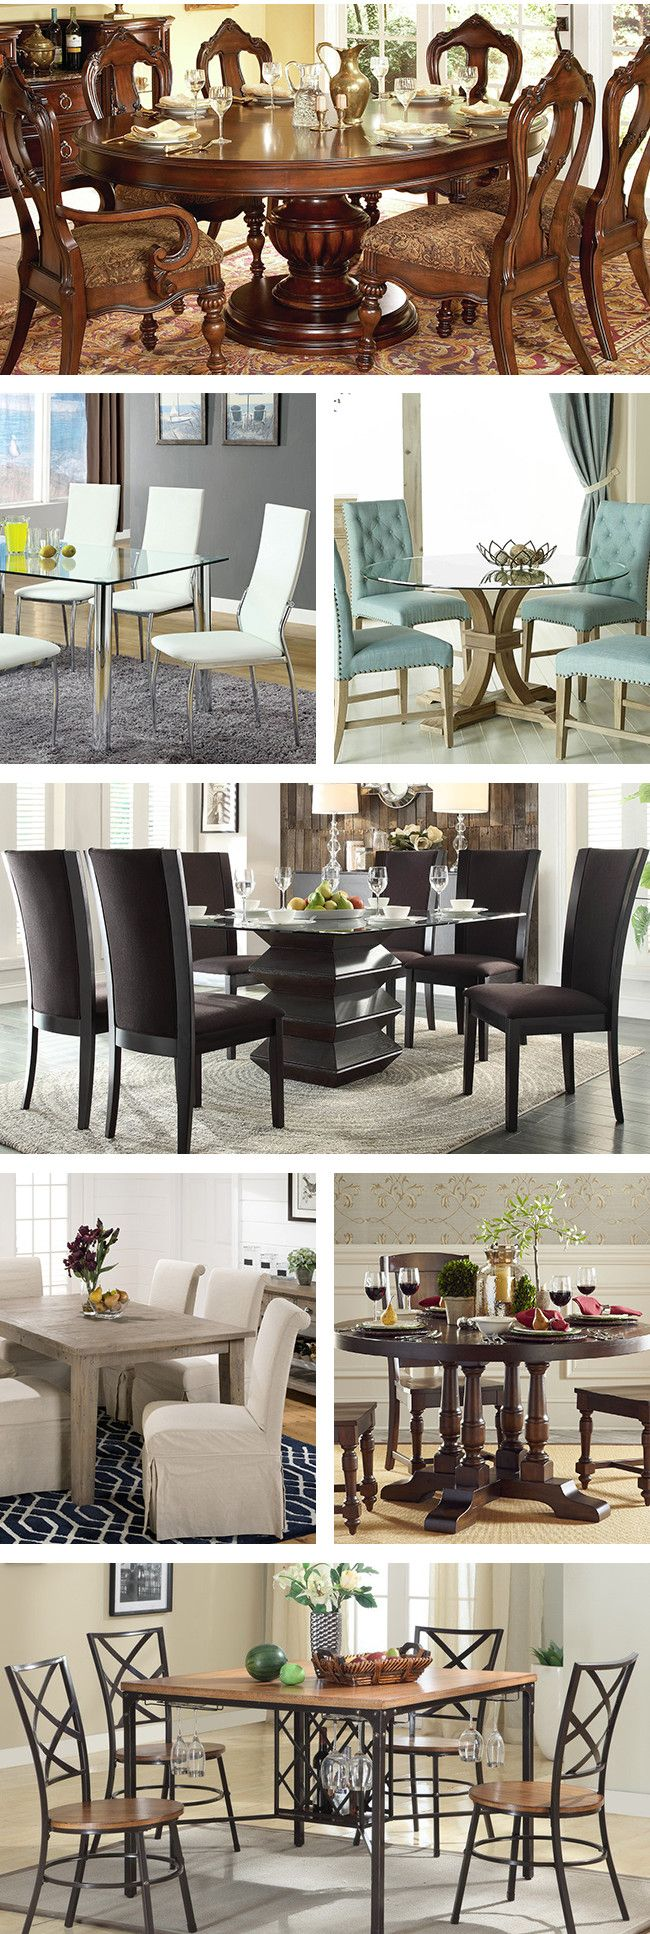 It is important to find a dining space that makes people feel welcome and comfortable. A large room is perfect for a round dining table, or if you prefer a rustic style choose the sturdy farmhouse table. Visit Wayfair and sign up today to get access to exclusive deals everyday up to 70% off. Free shipping on all orders over $49.